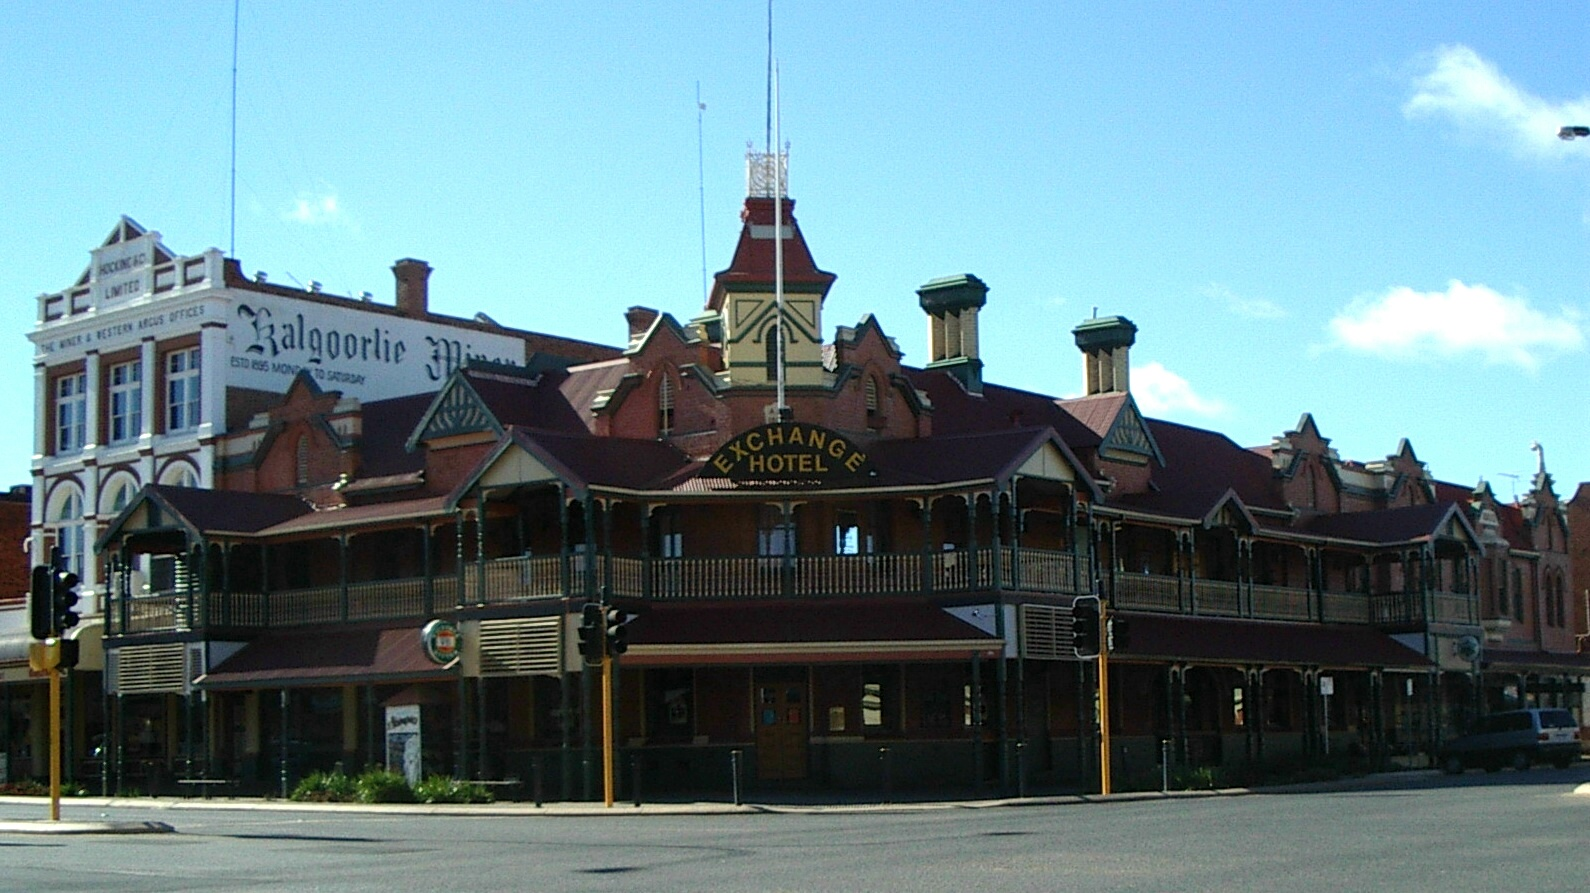 kalgoorlie personals Personals, introductions, more  use of this website constitutes acceptance of the west australian's user agreement and privacy policy .